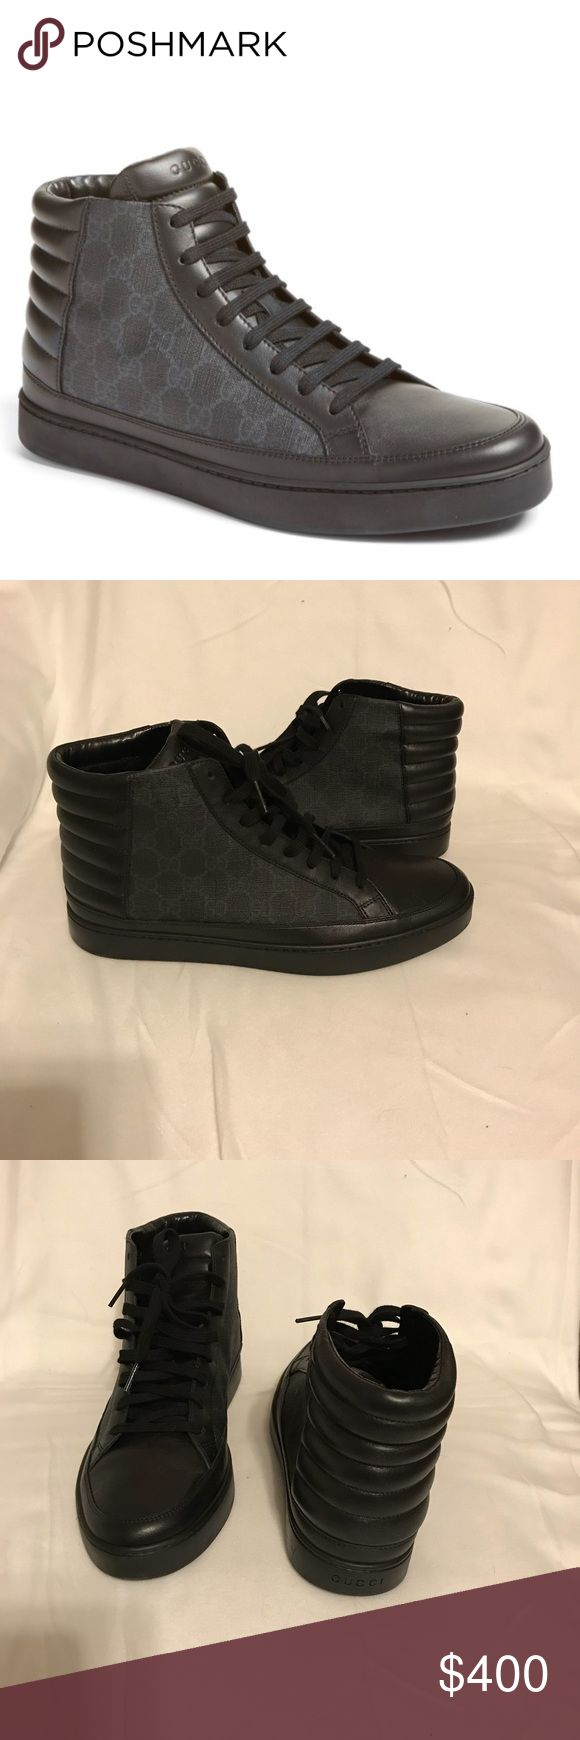 Like new! Gucci High top sneaker Like new! Gucci 'common' high top sneaker. Removable insole. Worn twice. True to size. Price is negotiable. Taking offers thru offer button. No trades. 100% authentic. Gucci Shoes Sneakers #hightopsneakers